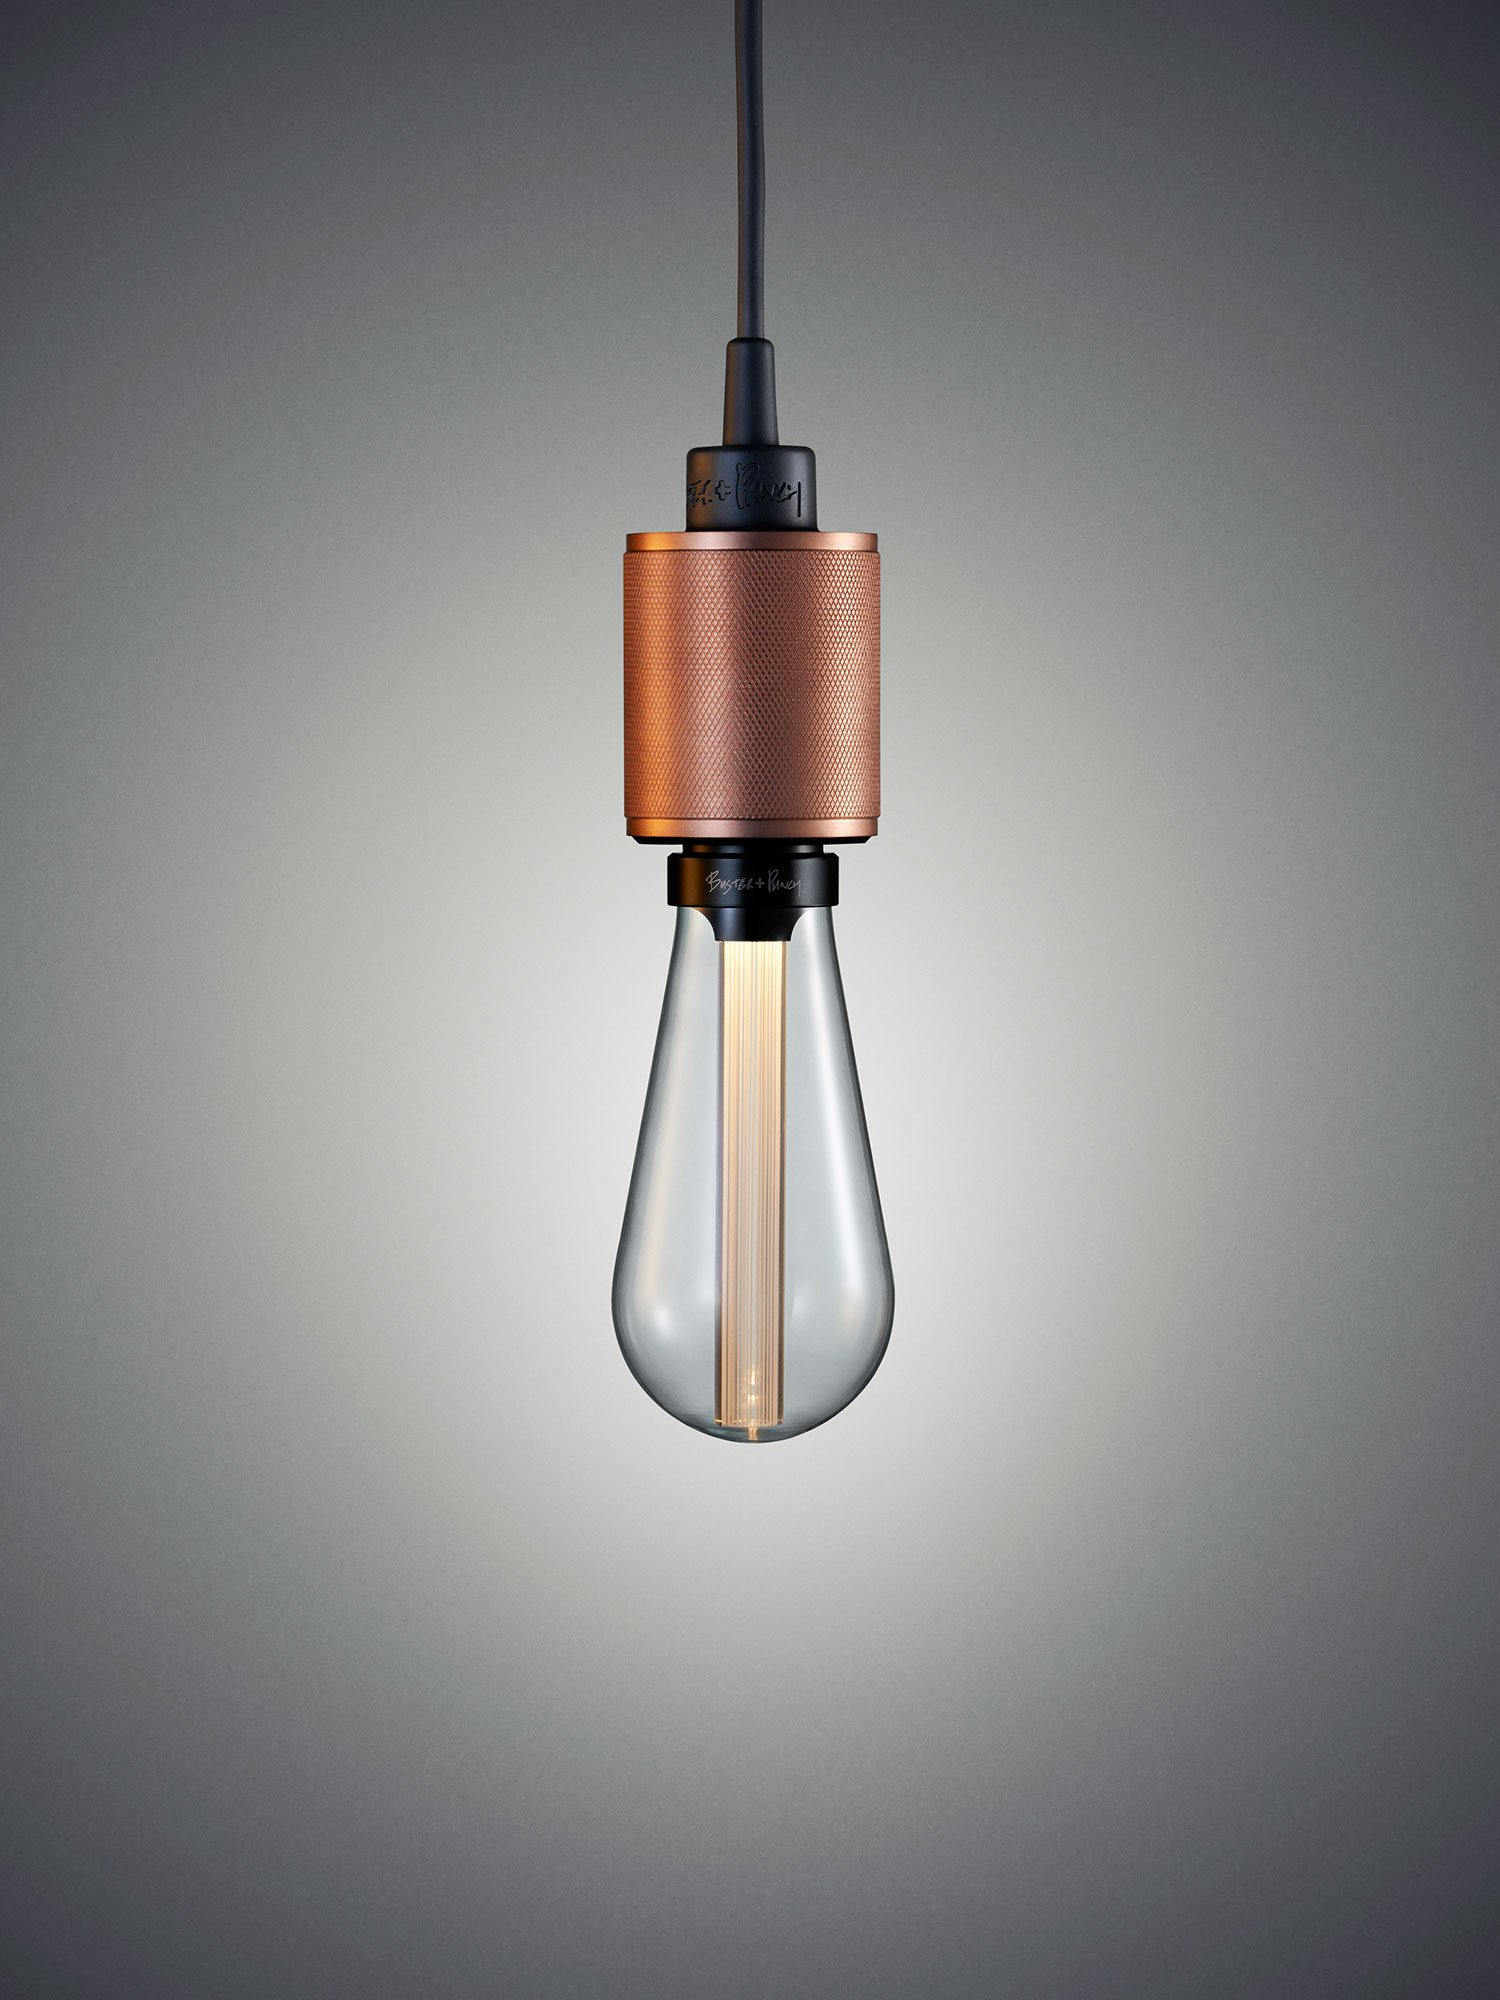 buster-punch-unveils-the-worlds-first-designer-led-bulb-5